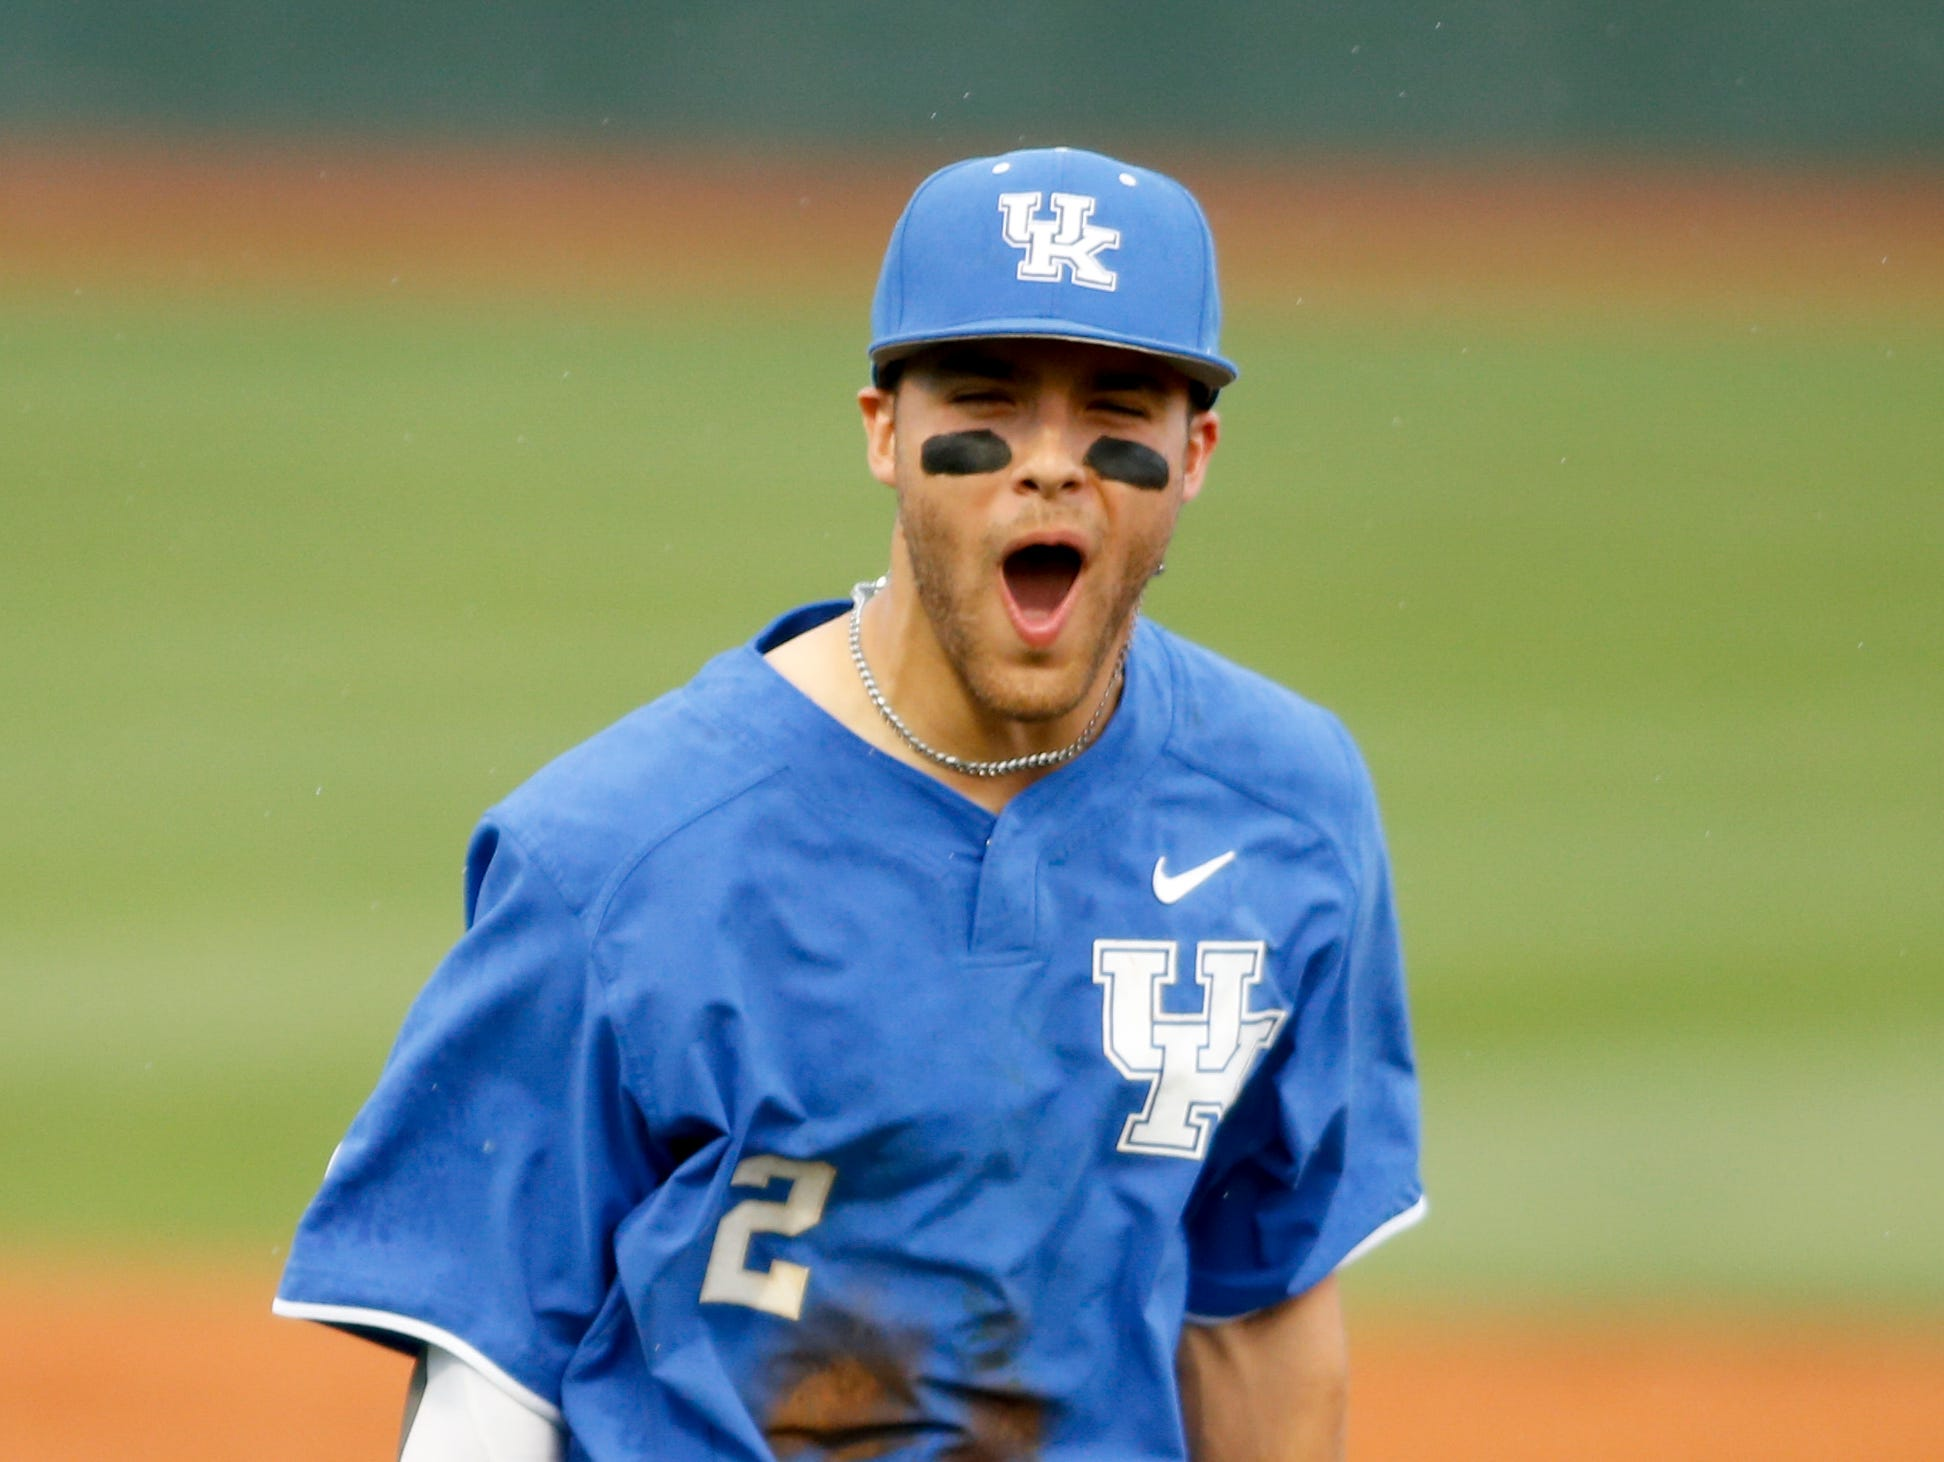 Kentucky Wildcats second basemen Riley Mahan celebrates after they turned a triple play in the second inning during the game against the Louisville Cardinals at Cliff Hagan Stadium in Lexington, Kentucky on Tuesday, April 18, 2017. Michael Reaves/Special to The Courier Journal